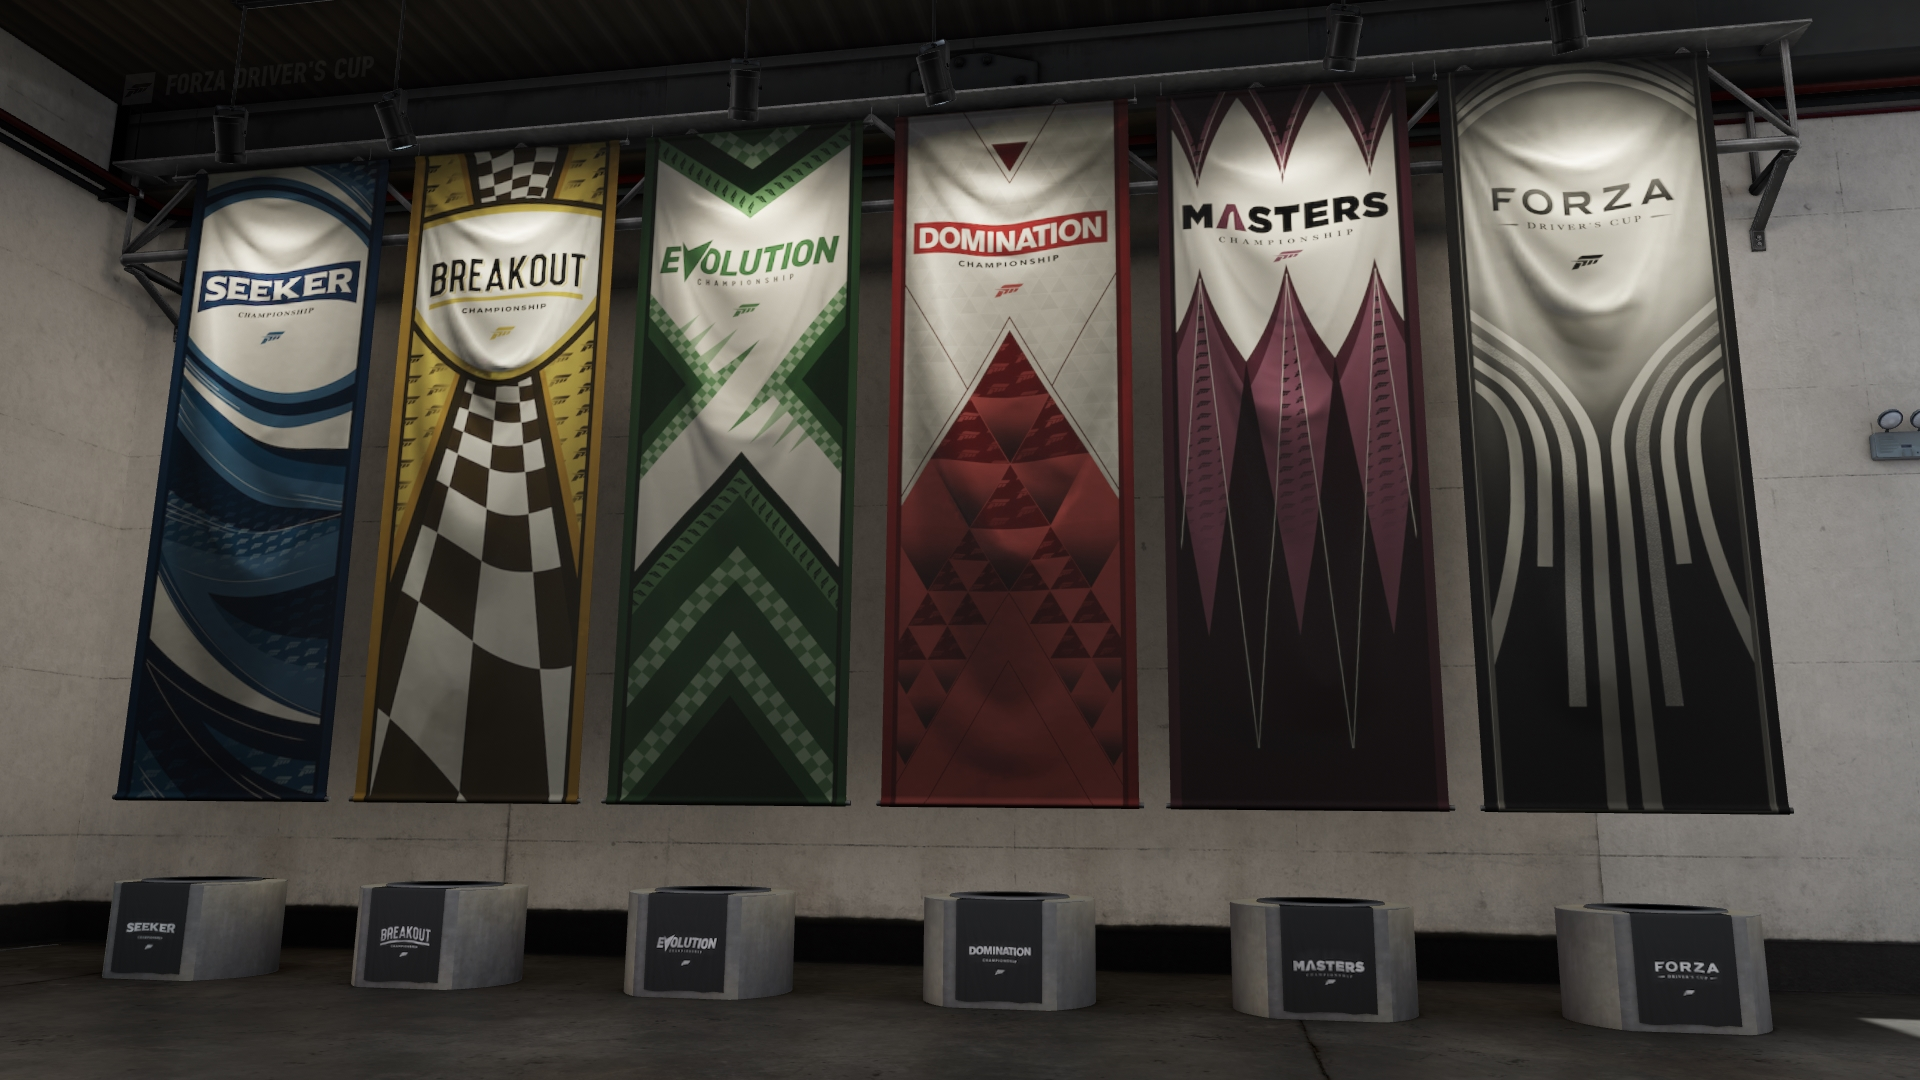 Forza Driver's Cup